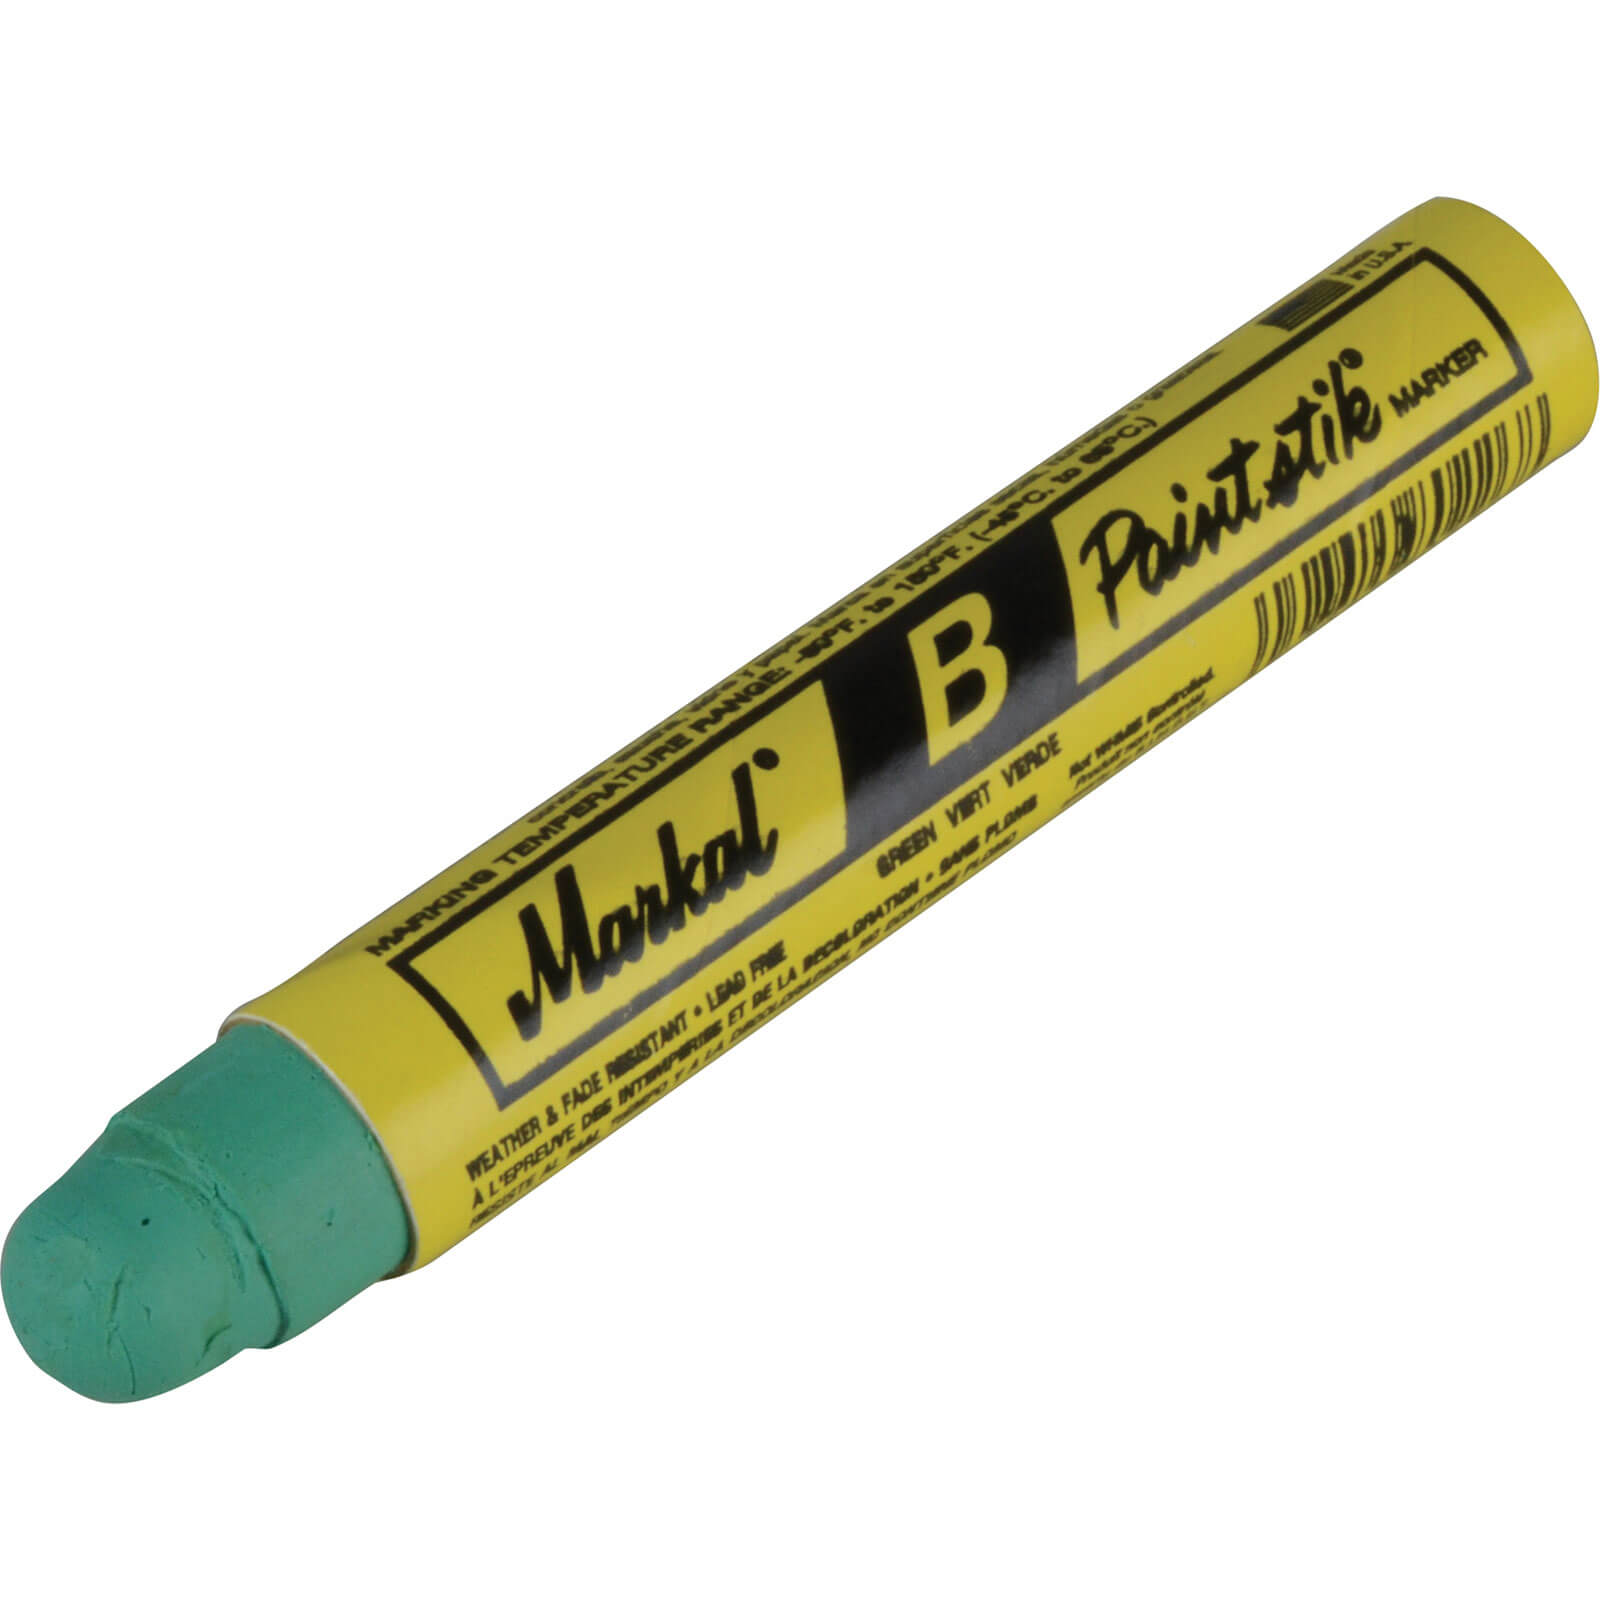 Image of Markal Cold Surface Marker Green